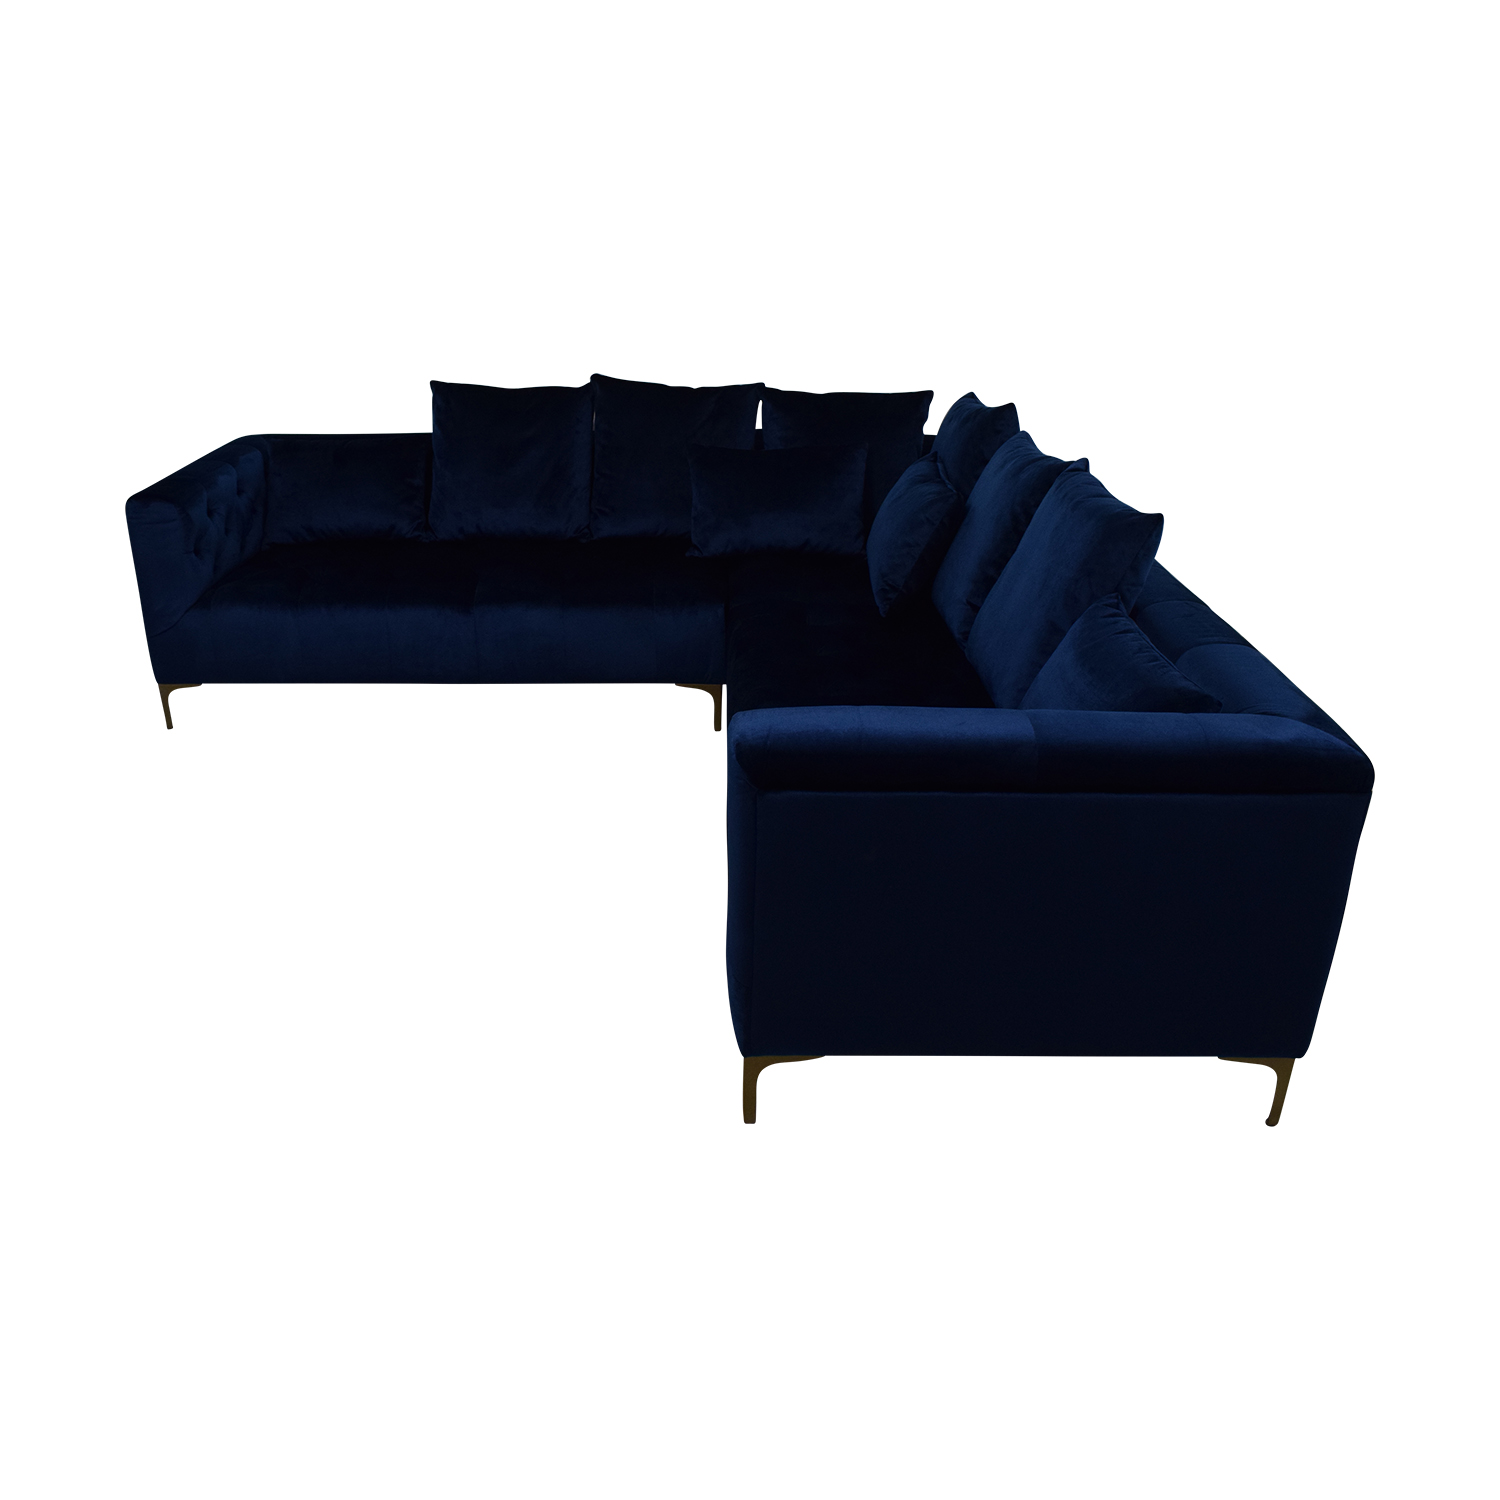 shop Ms. Chesterfield Royal Blue L-Shaped Tufted Sectional